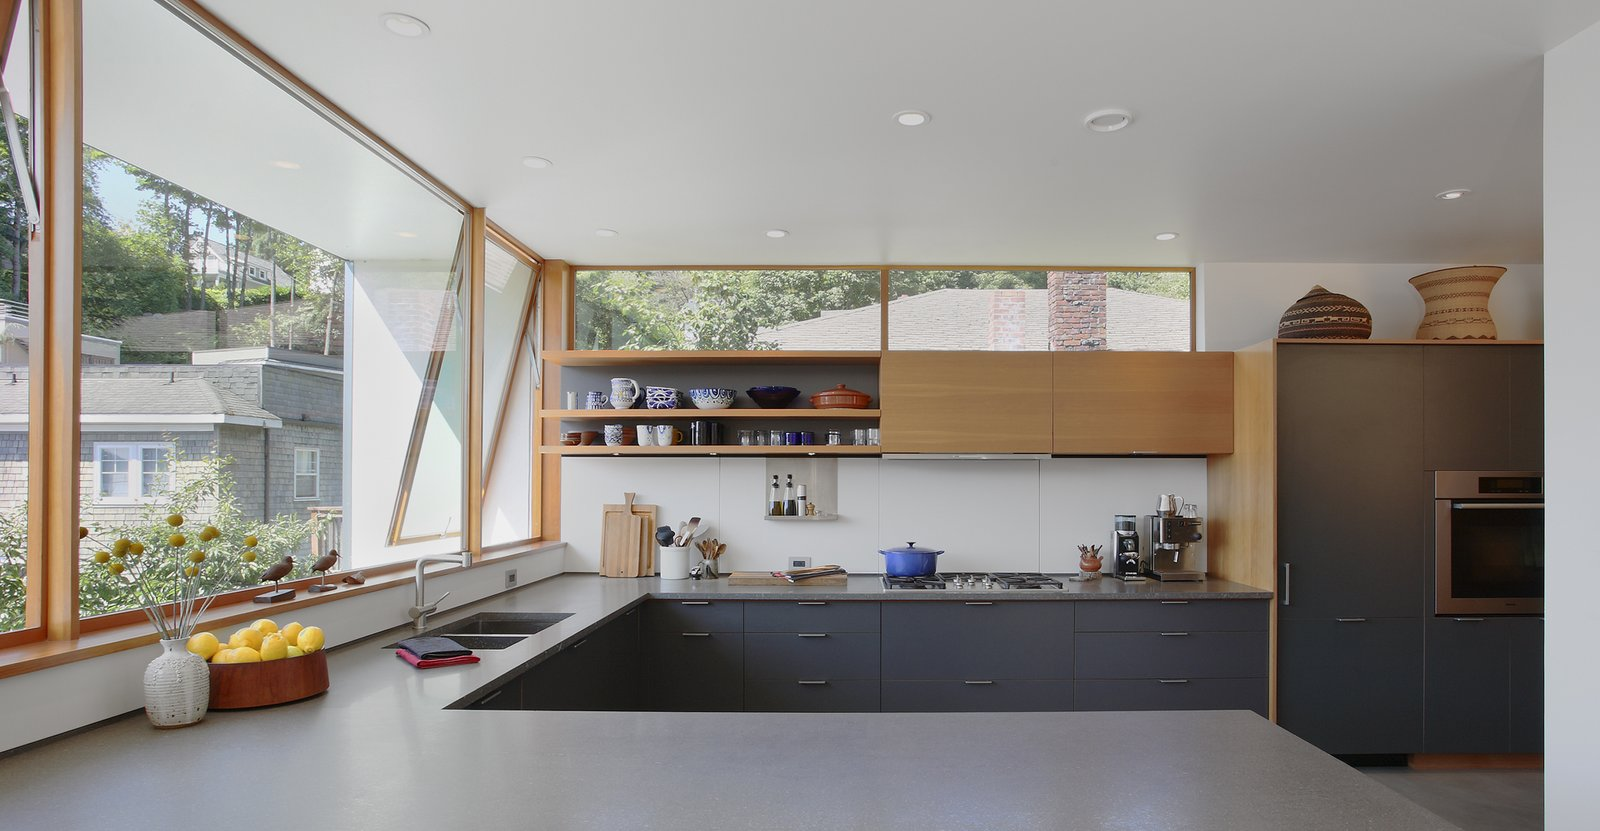 In the kitchen, a high western window carries the eye past neighboring rooftops to the lush hillside beyond. A wall also extends out to block sight of a neighboring deck. The architects paired custom shelving with slate-gray cabinets by Henrybuilt, cool Basaltina countertops, and white Corian backsplash. The faucet is by Cifial. Tagged: Kitchen.  Photo 3 of 11 in Seattle Home Carefully Blocks Out Neighbors, While Celebrating Natural Surroundings